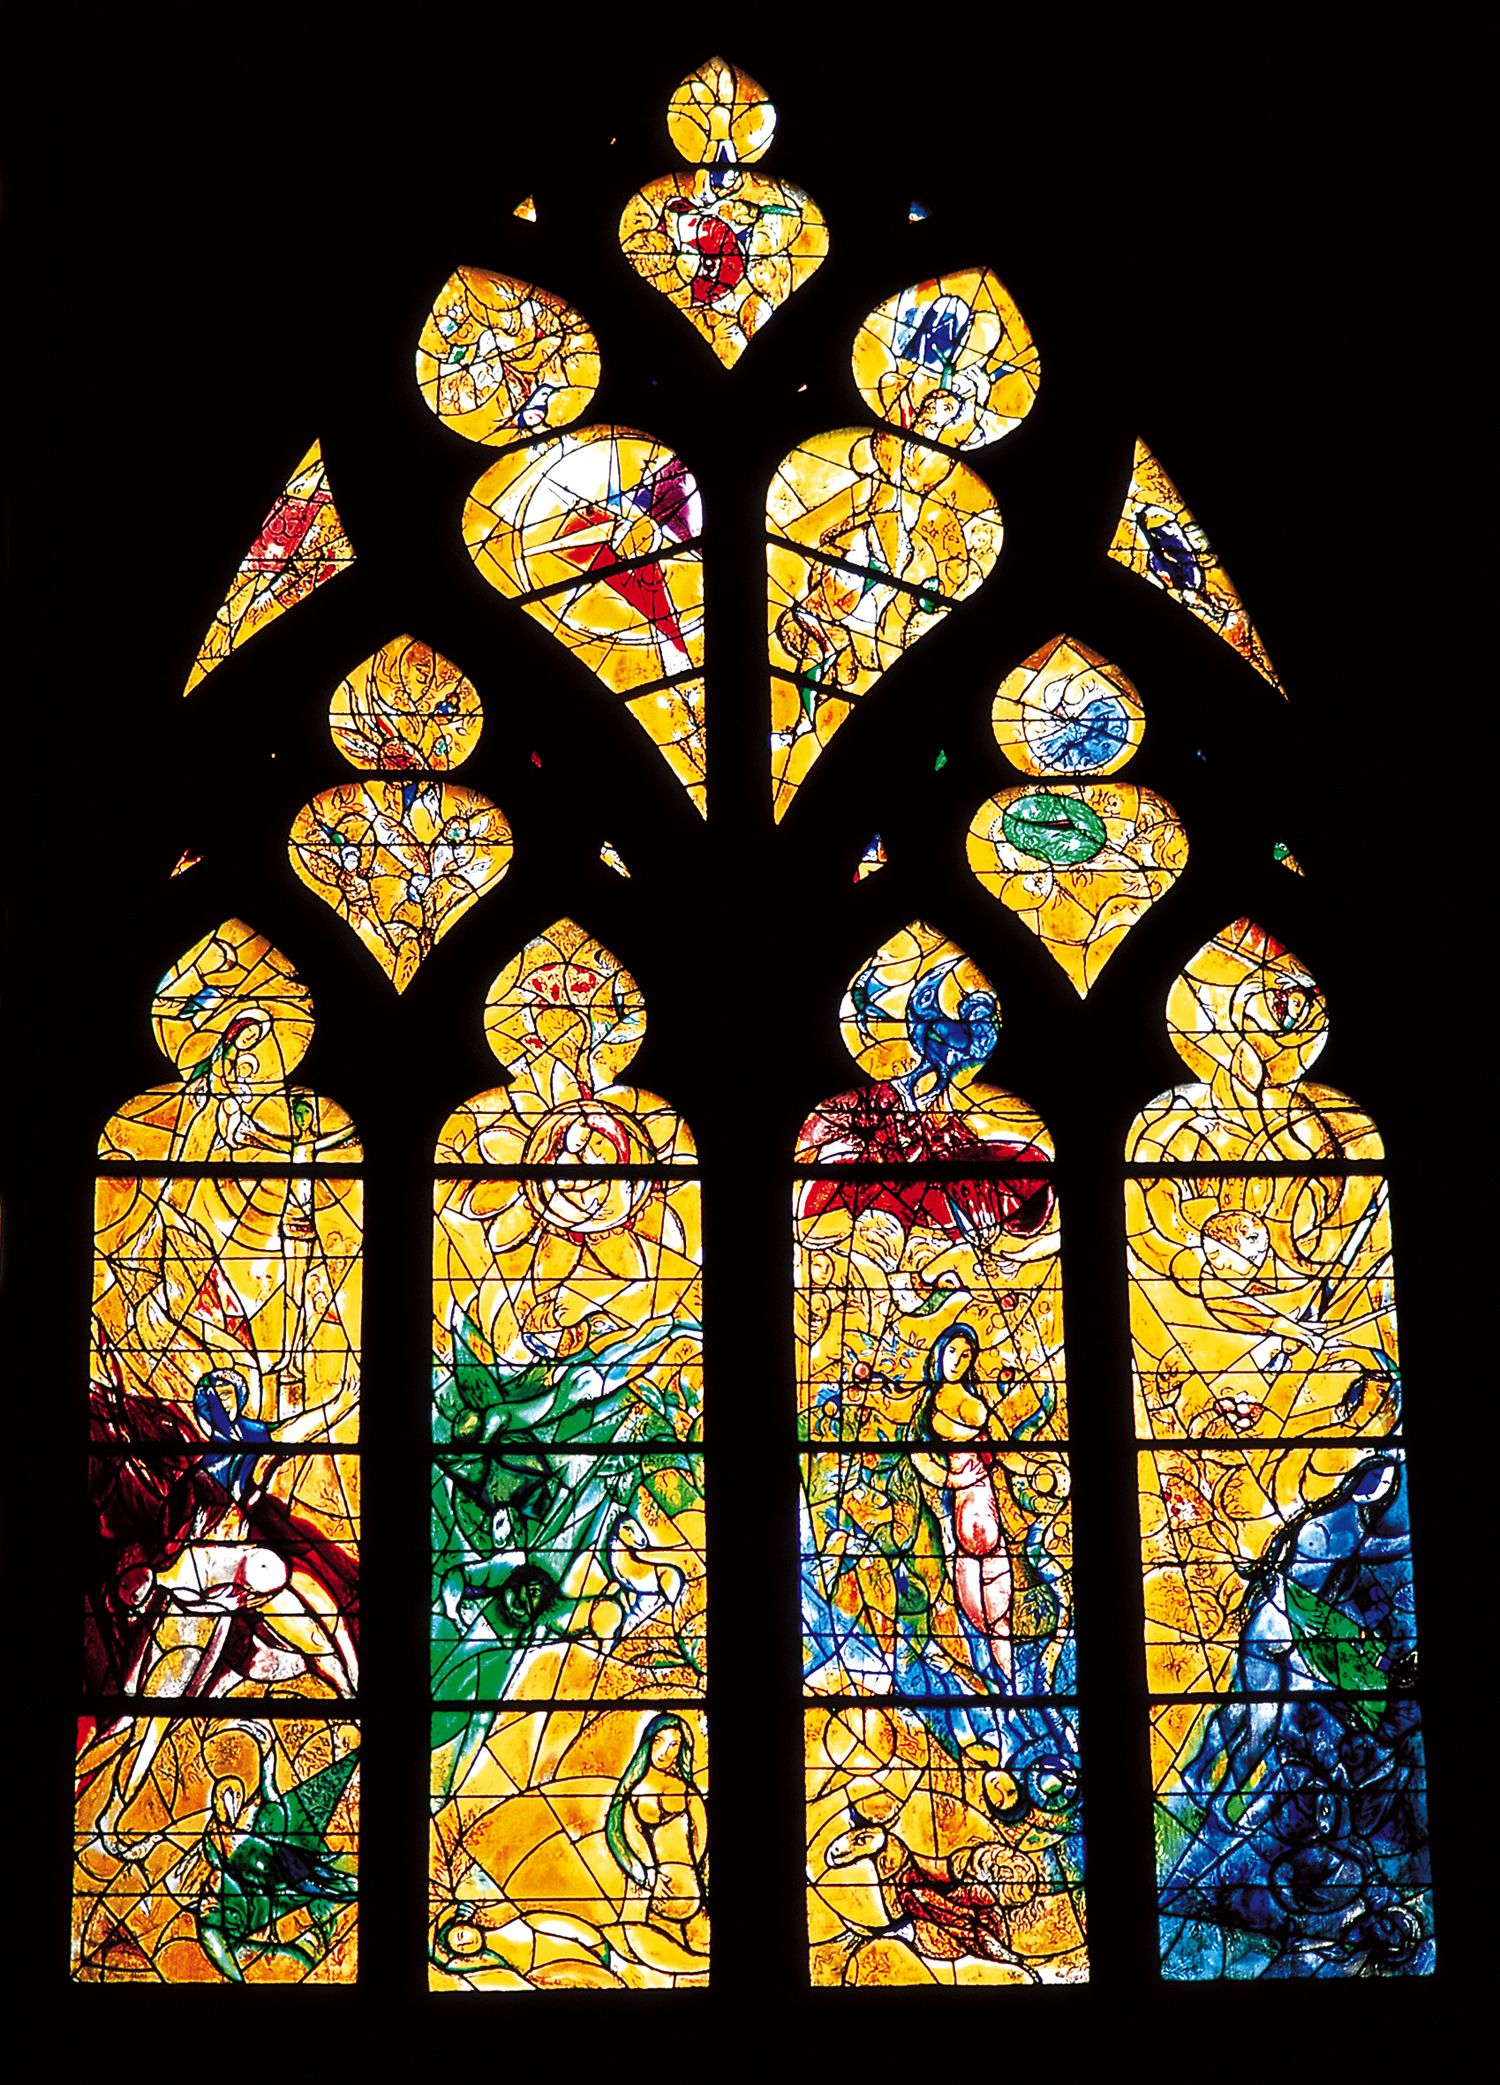 Stained glass windows of Marc Chagall, interior of the Metz ...